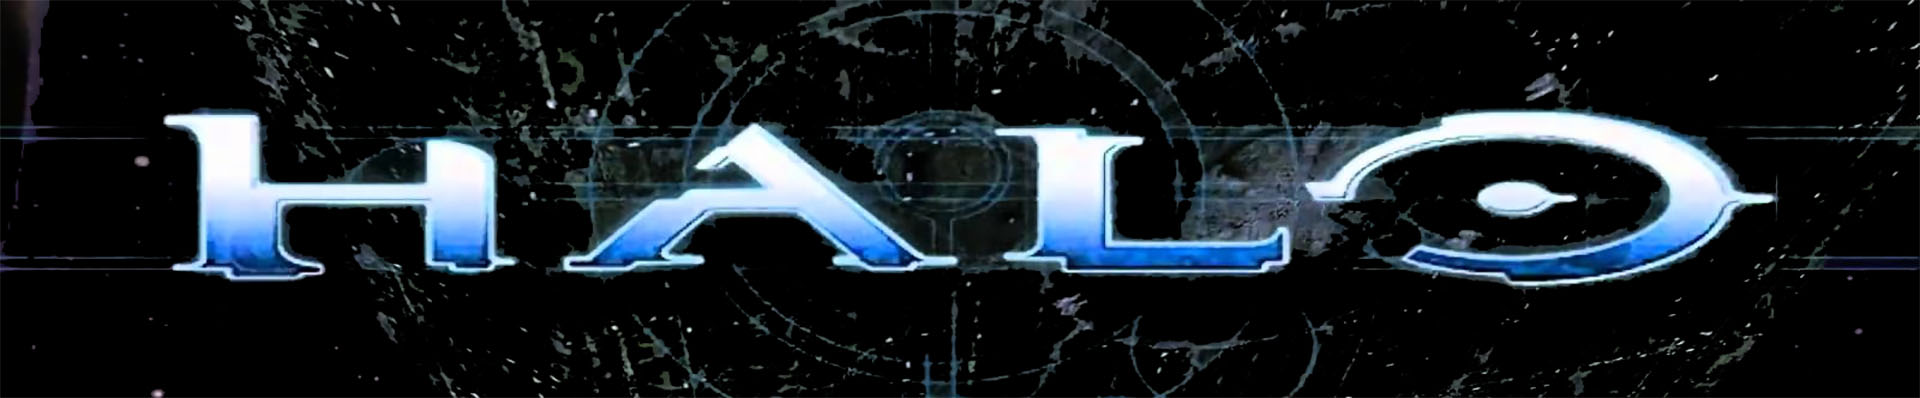 The Halo title card.